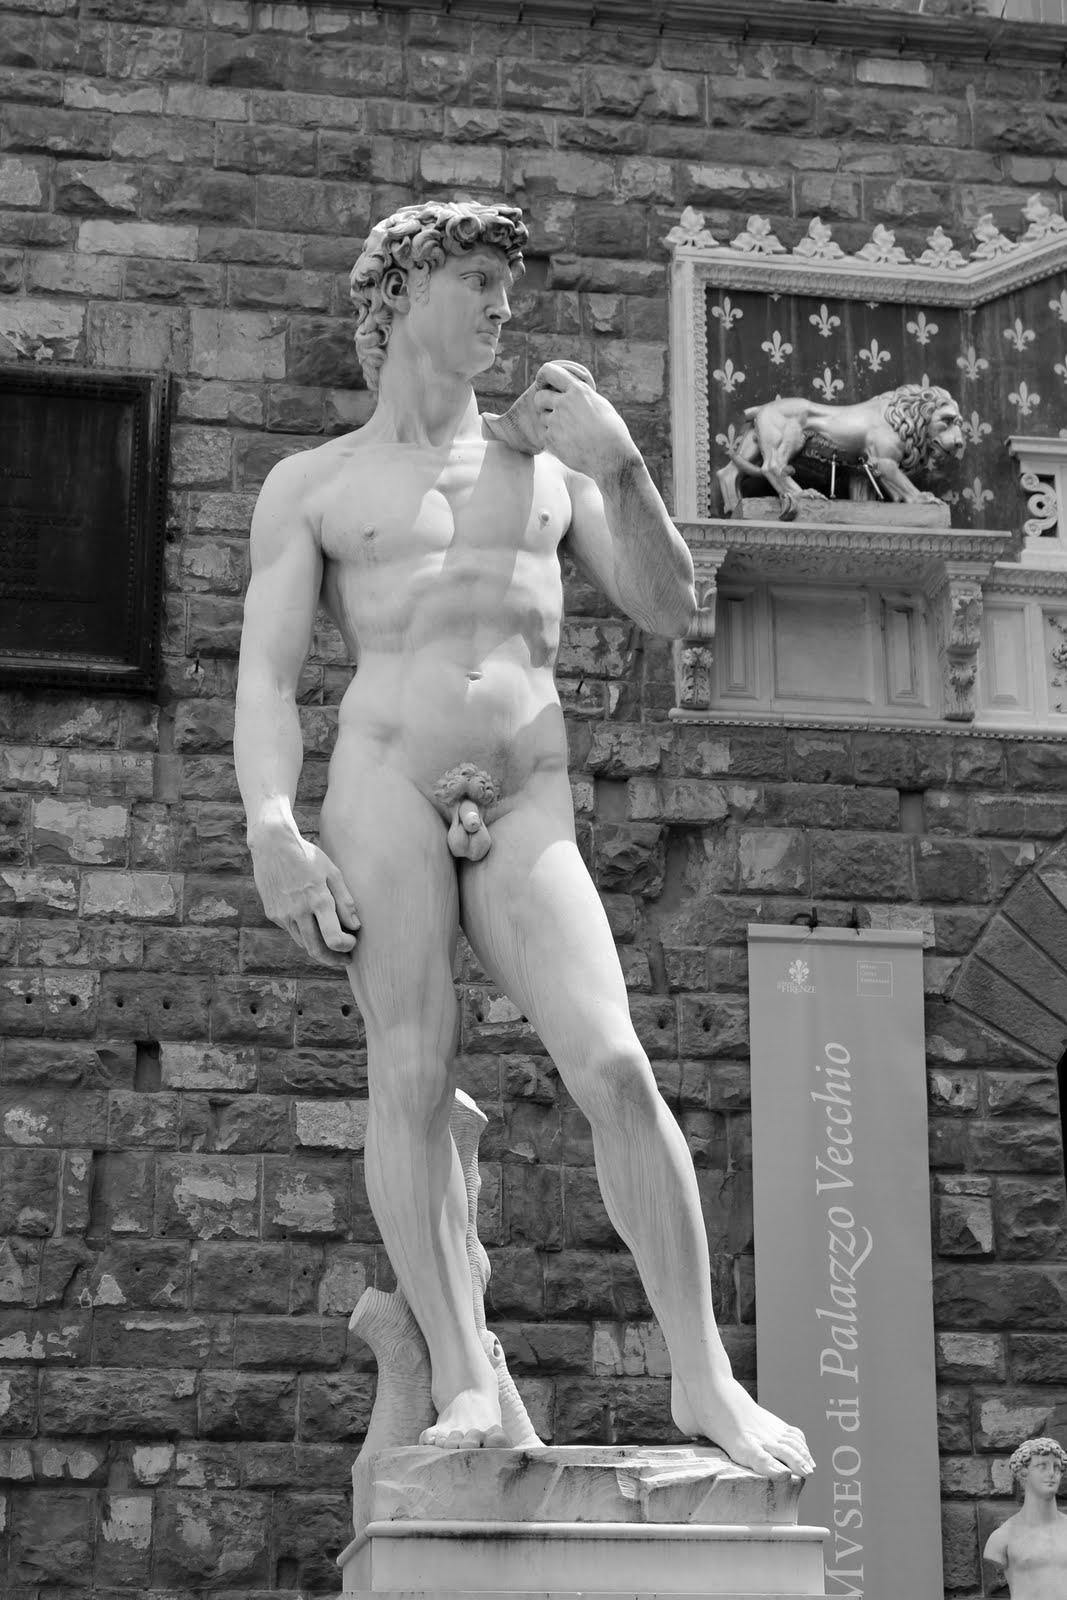 Statue of David by Michelangelo in black and white